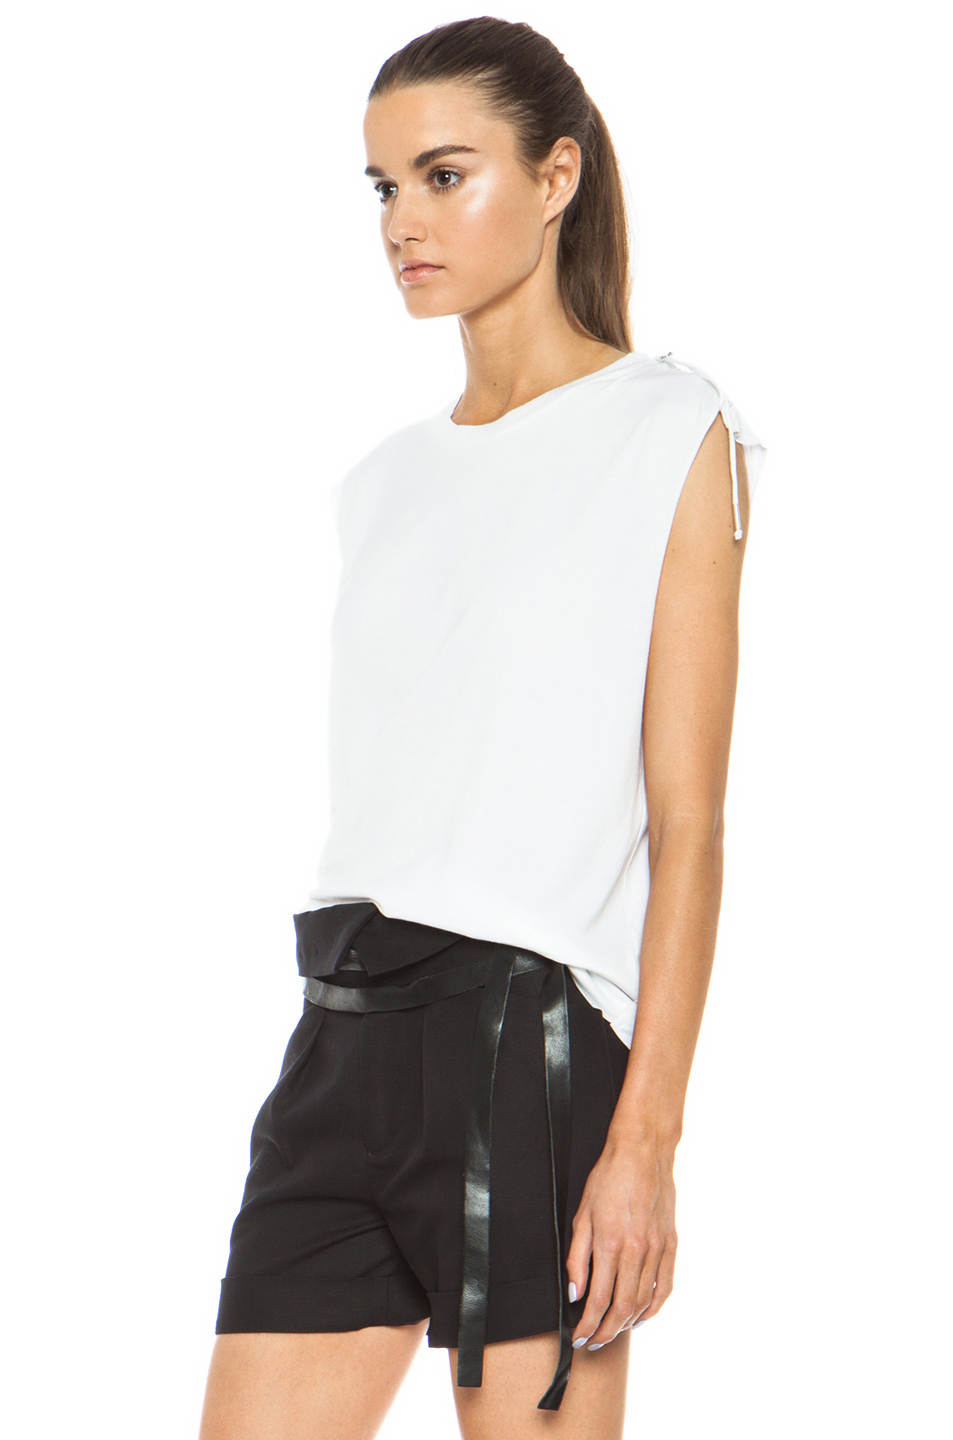 Isabel Marant|Tiara Cotton Tank in White